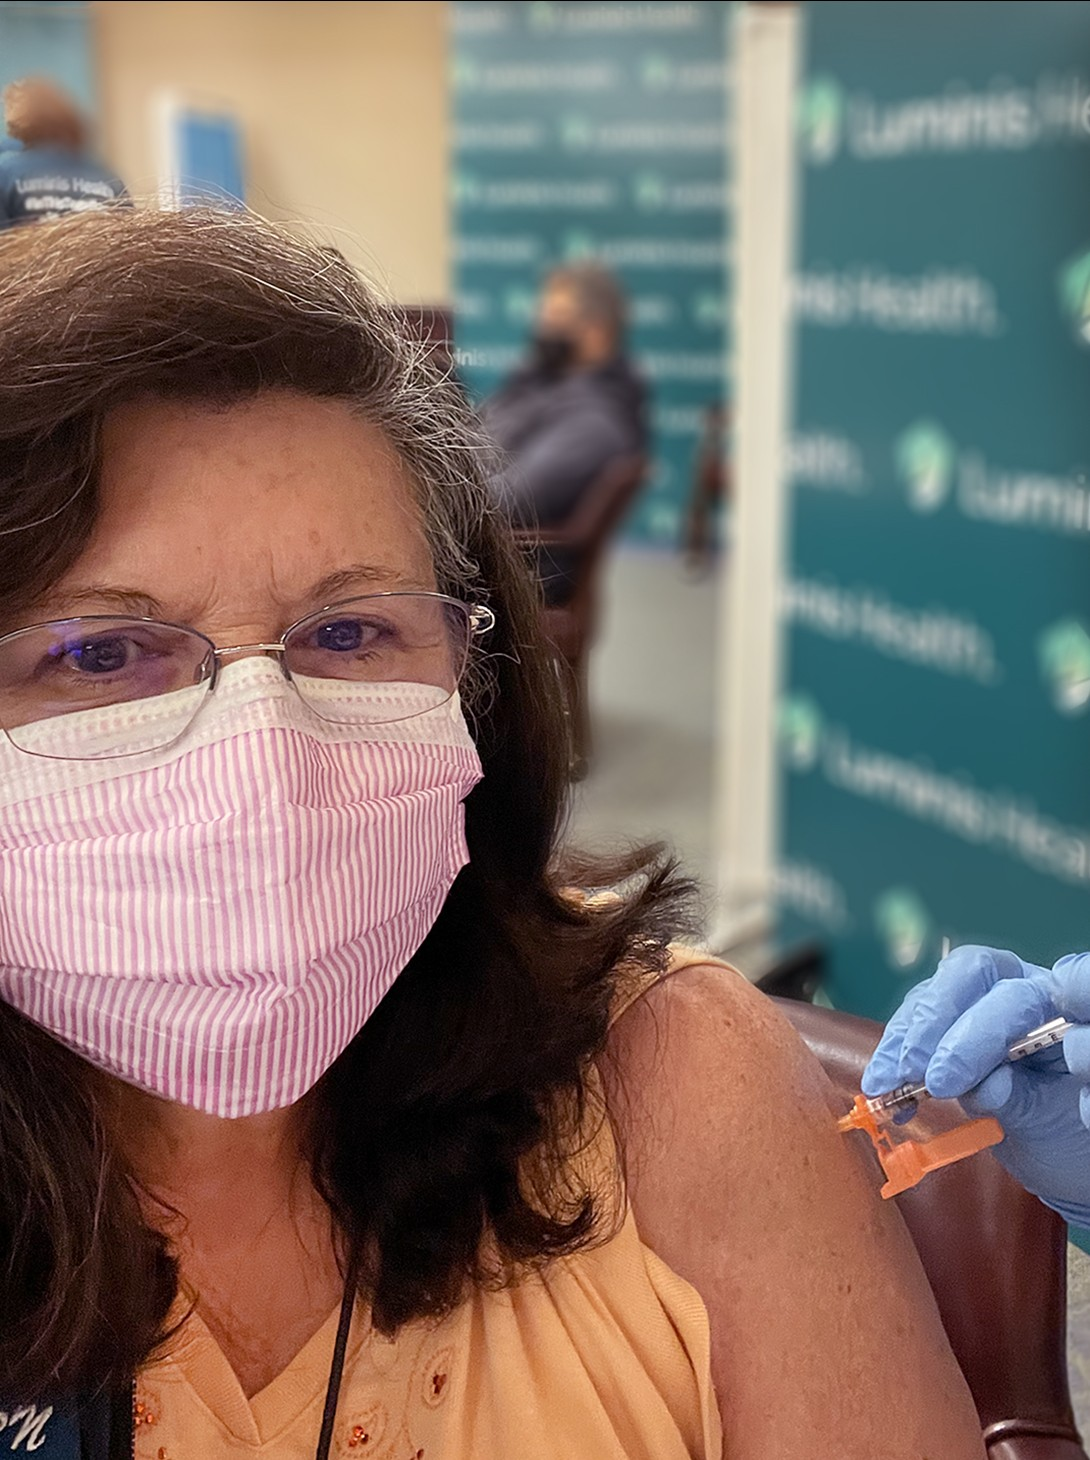 Woman with brown hair wearing glasses and a shirt receiving the covid vaccine.